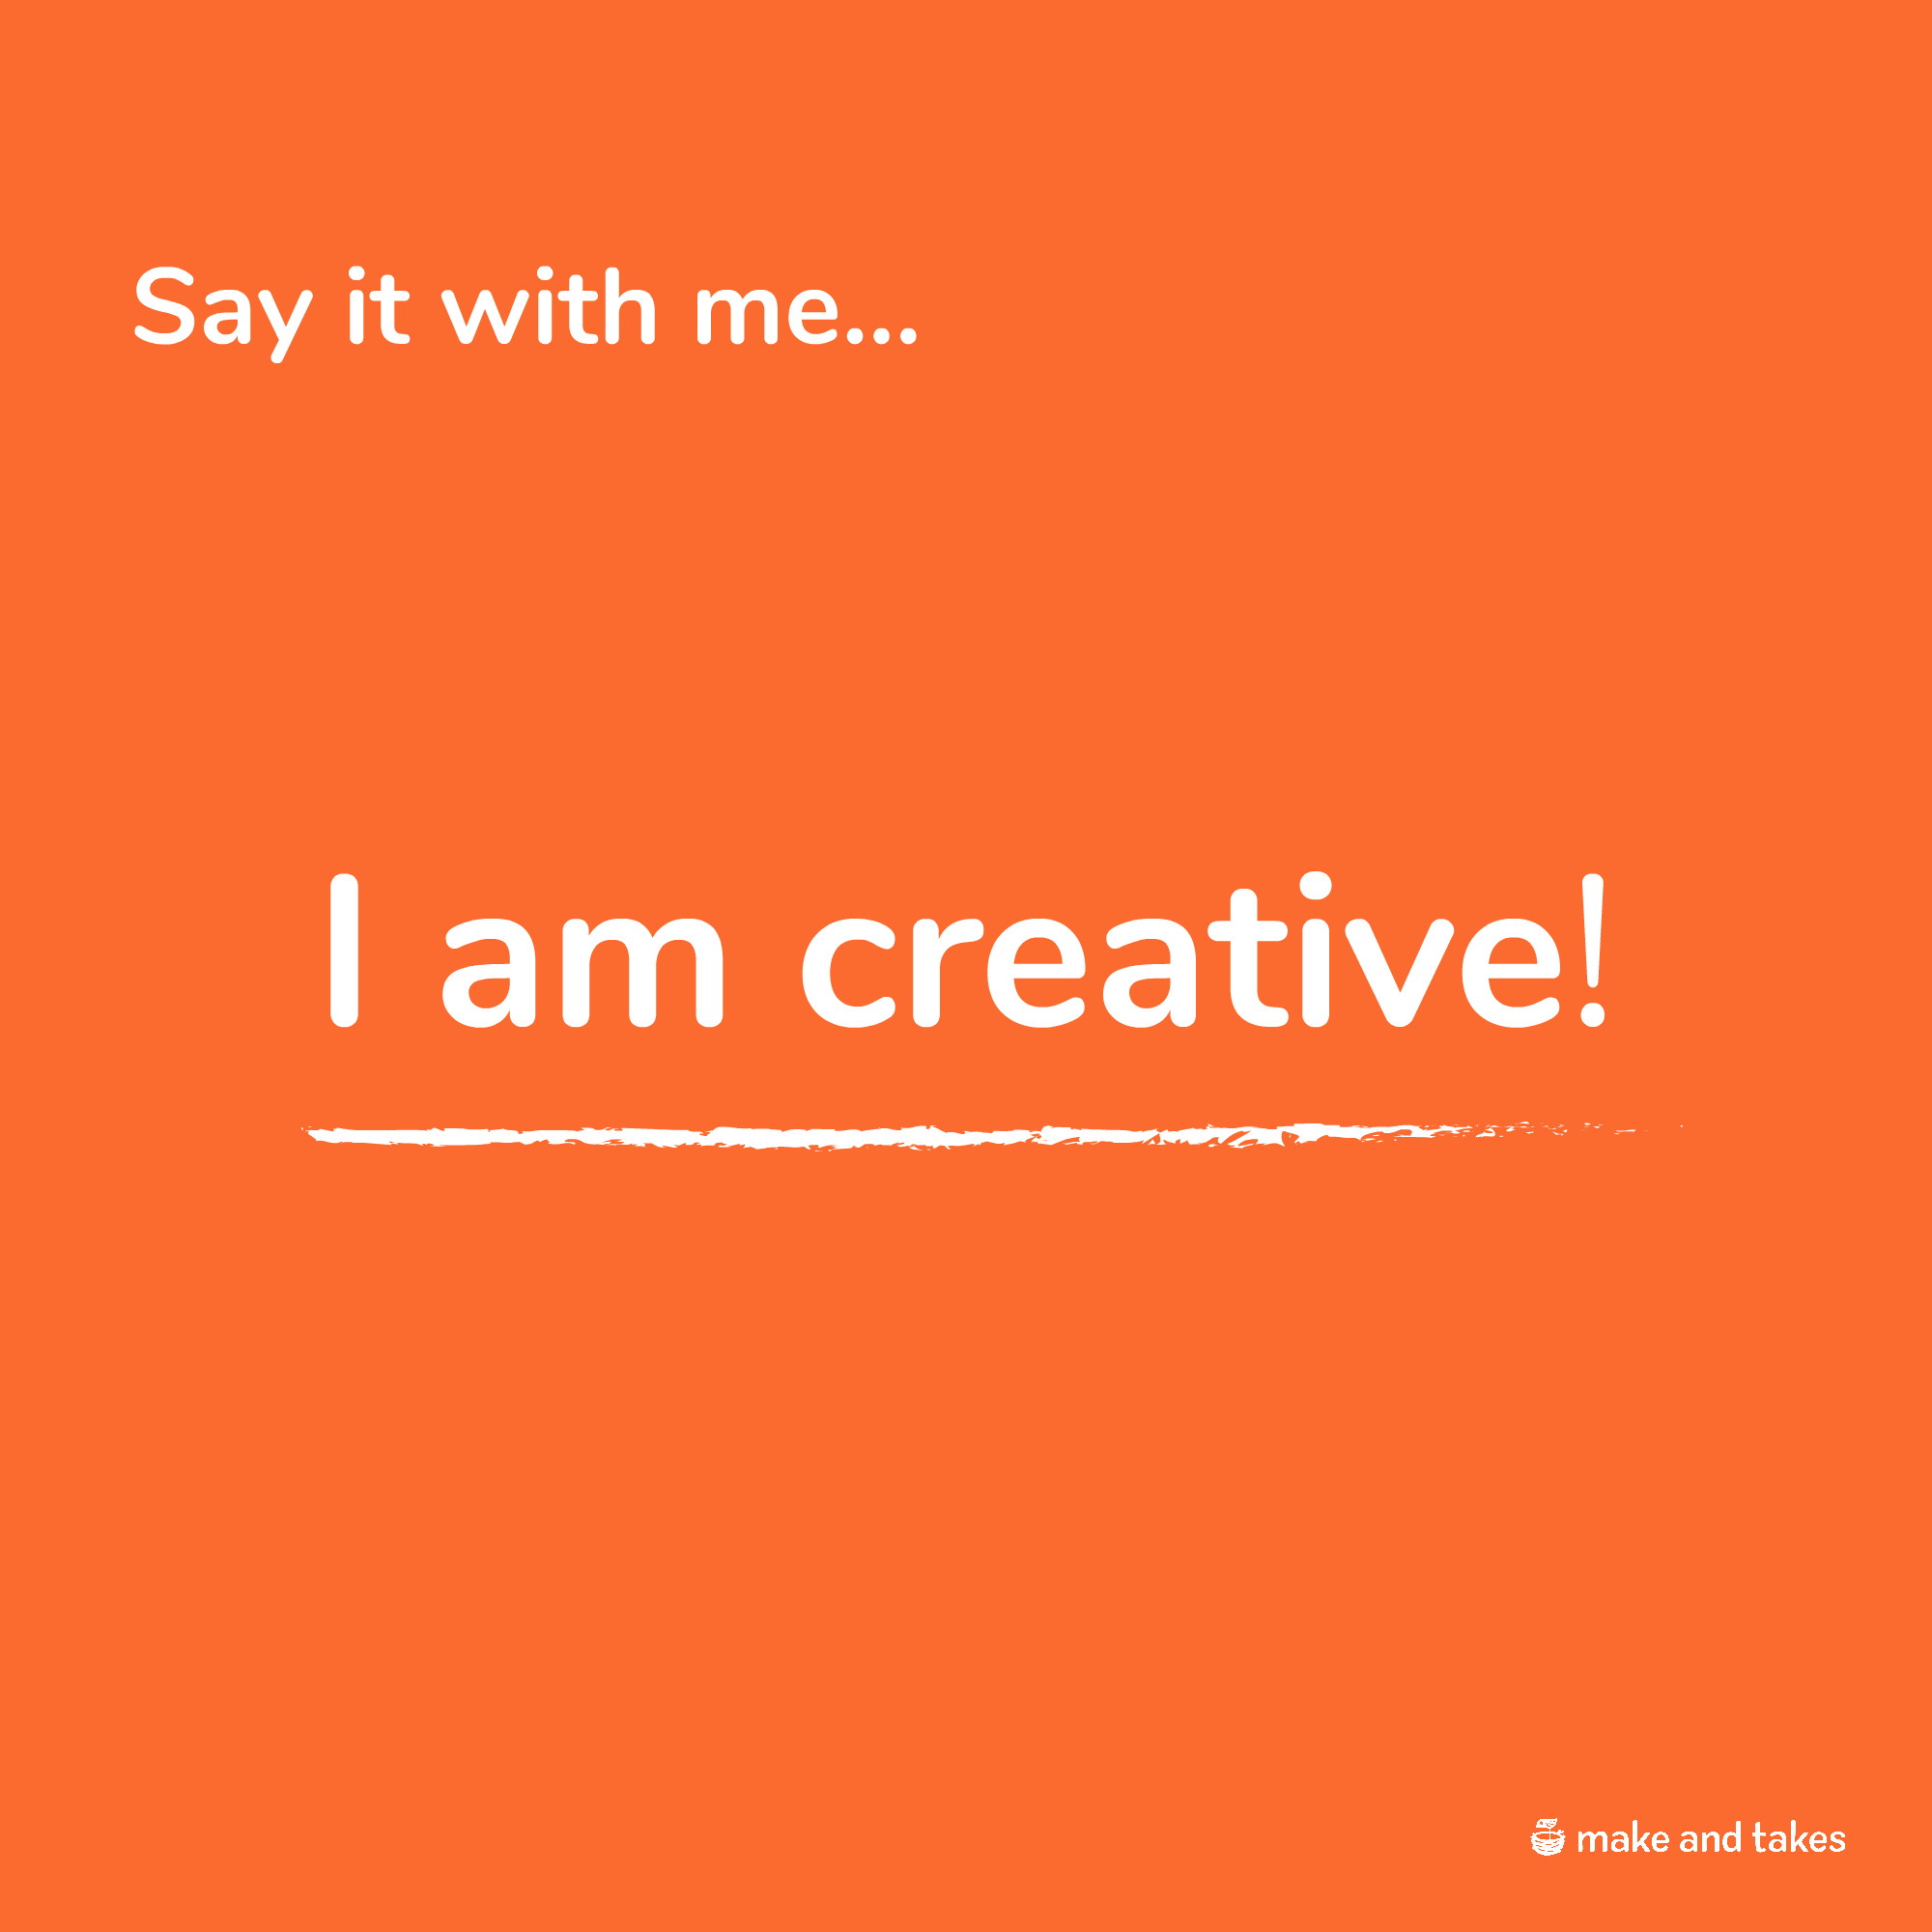 I am creative mantra